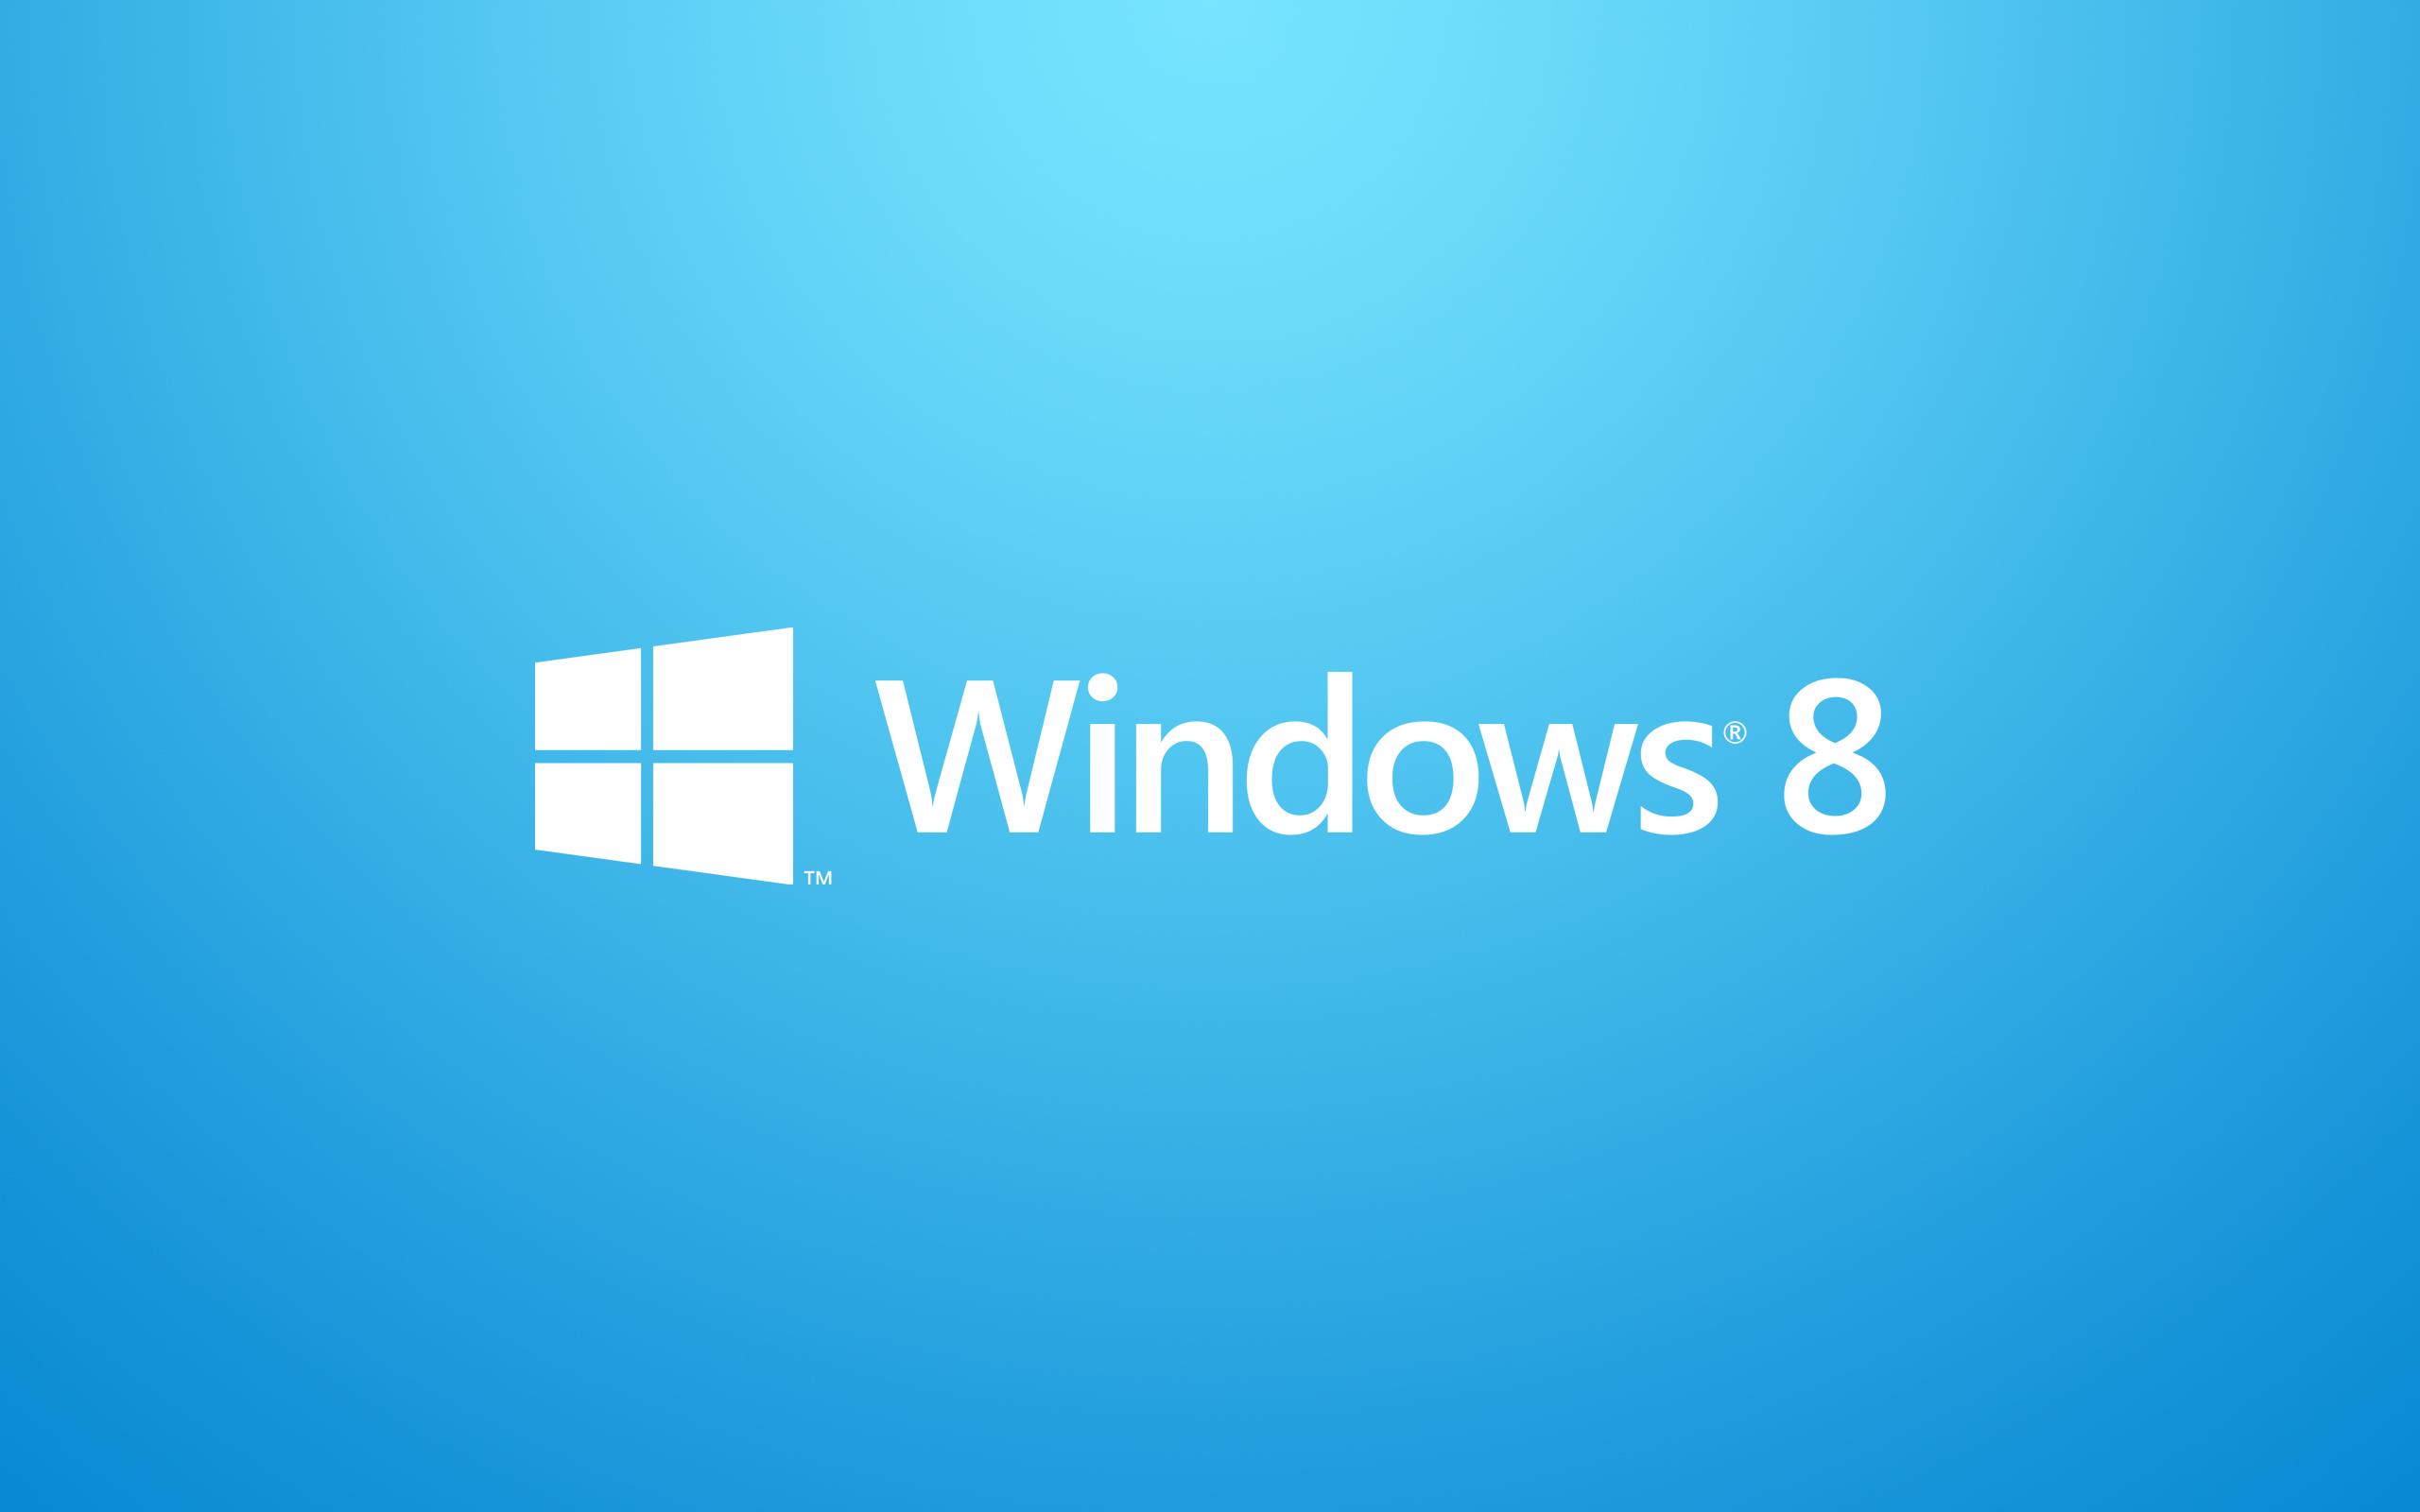 windows 8 wallpaper 2447